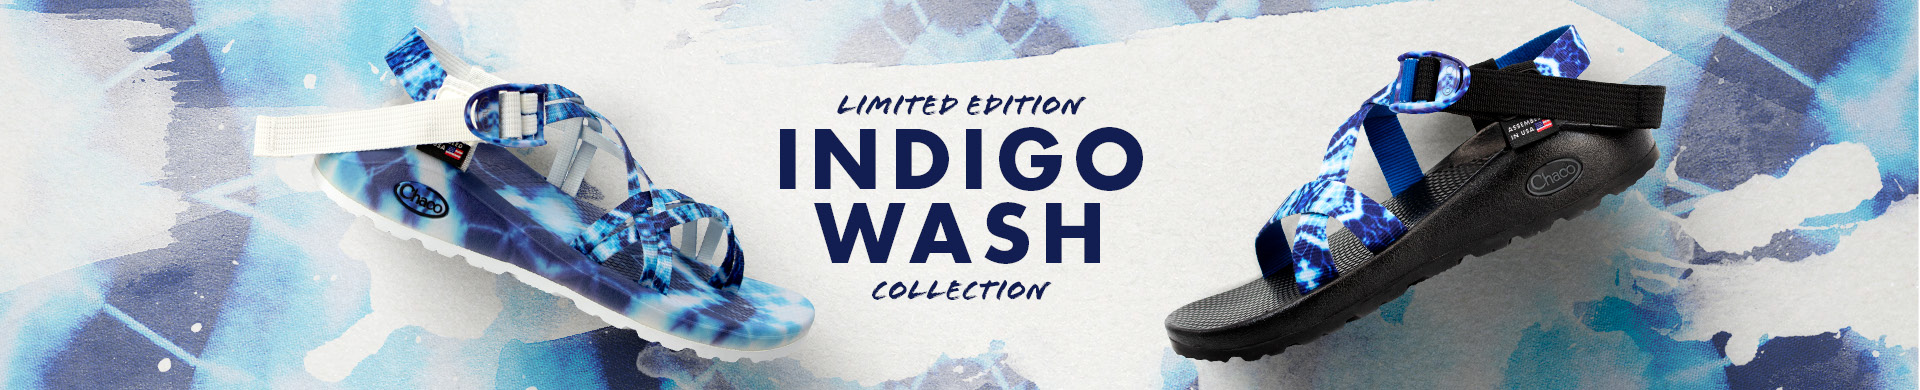 NEW: Indigo Wash Collection